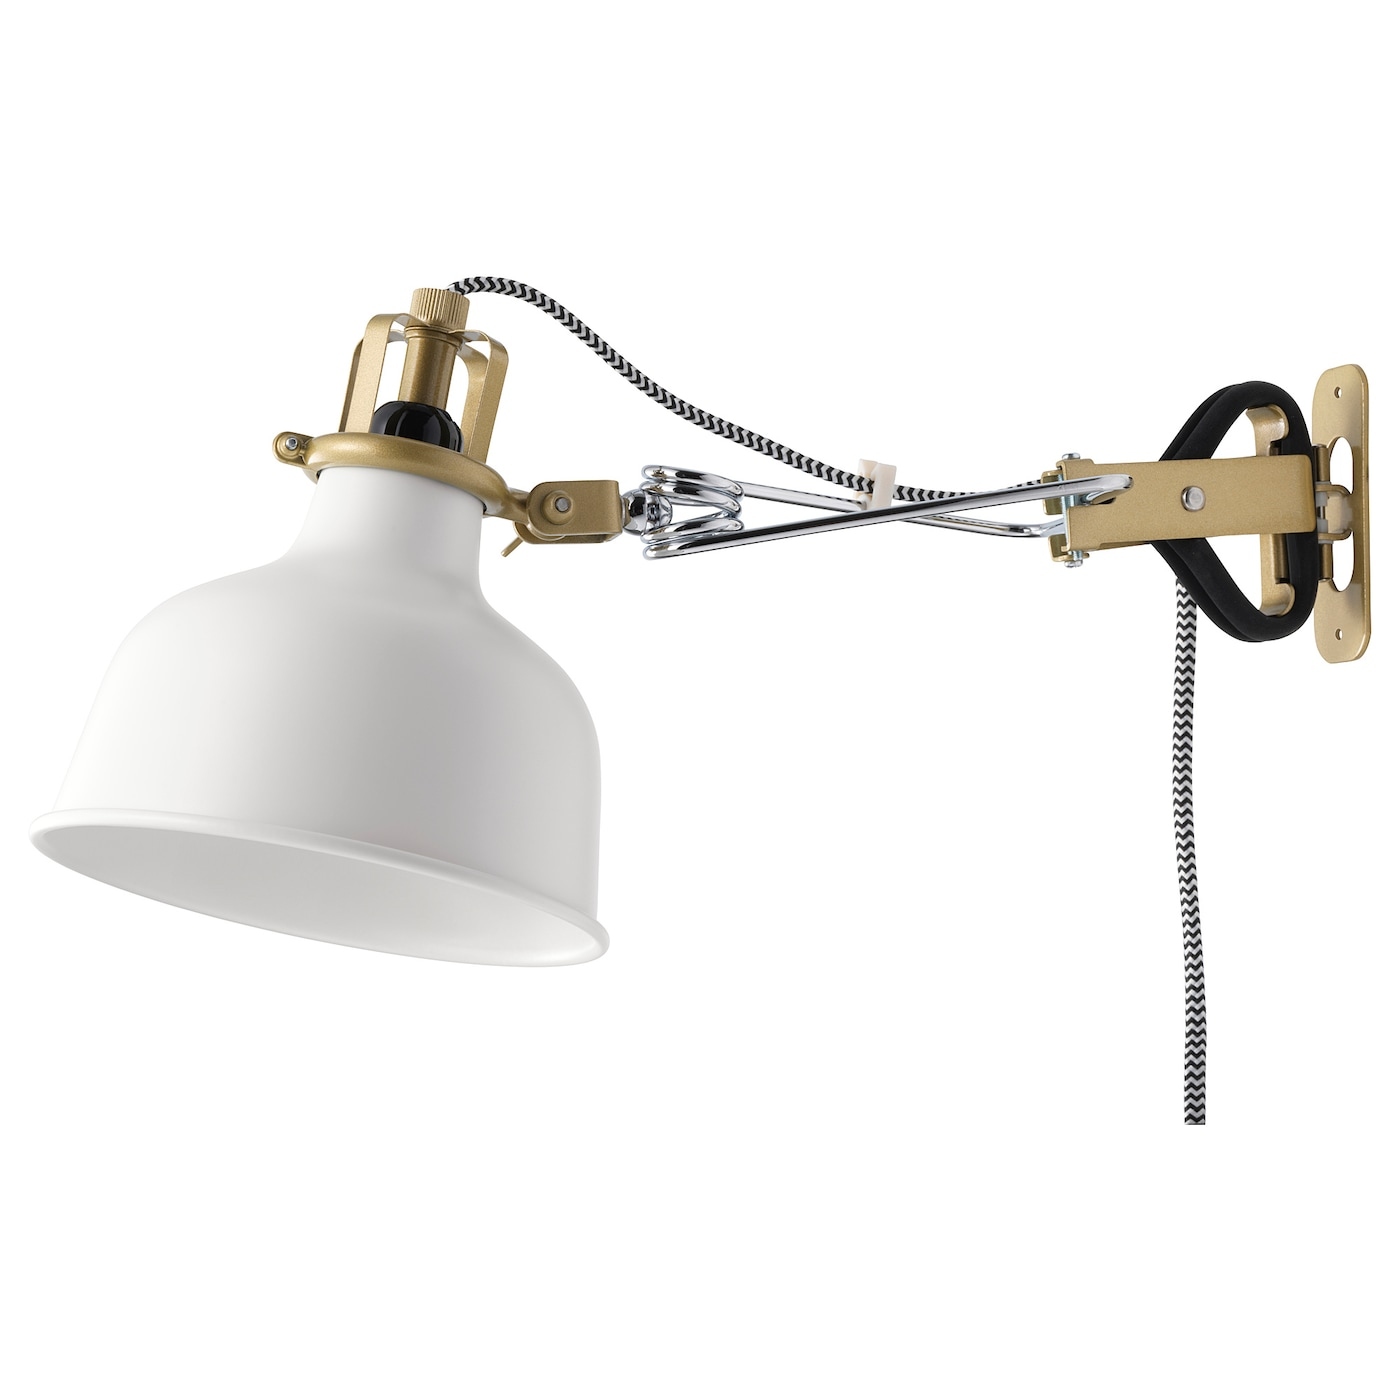 RANARP Wall/clamp spotlight - off-white